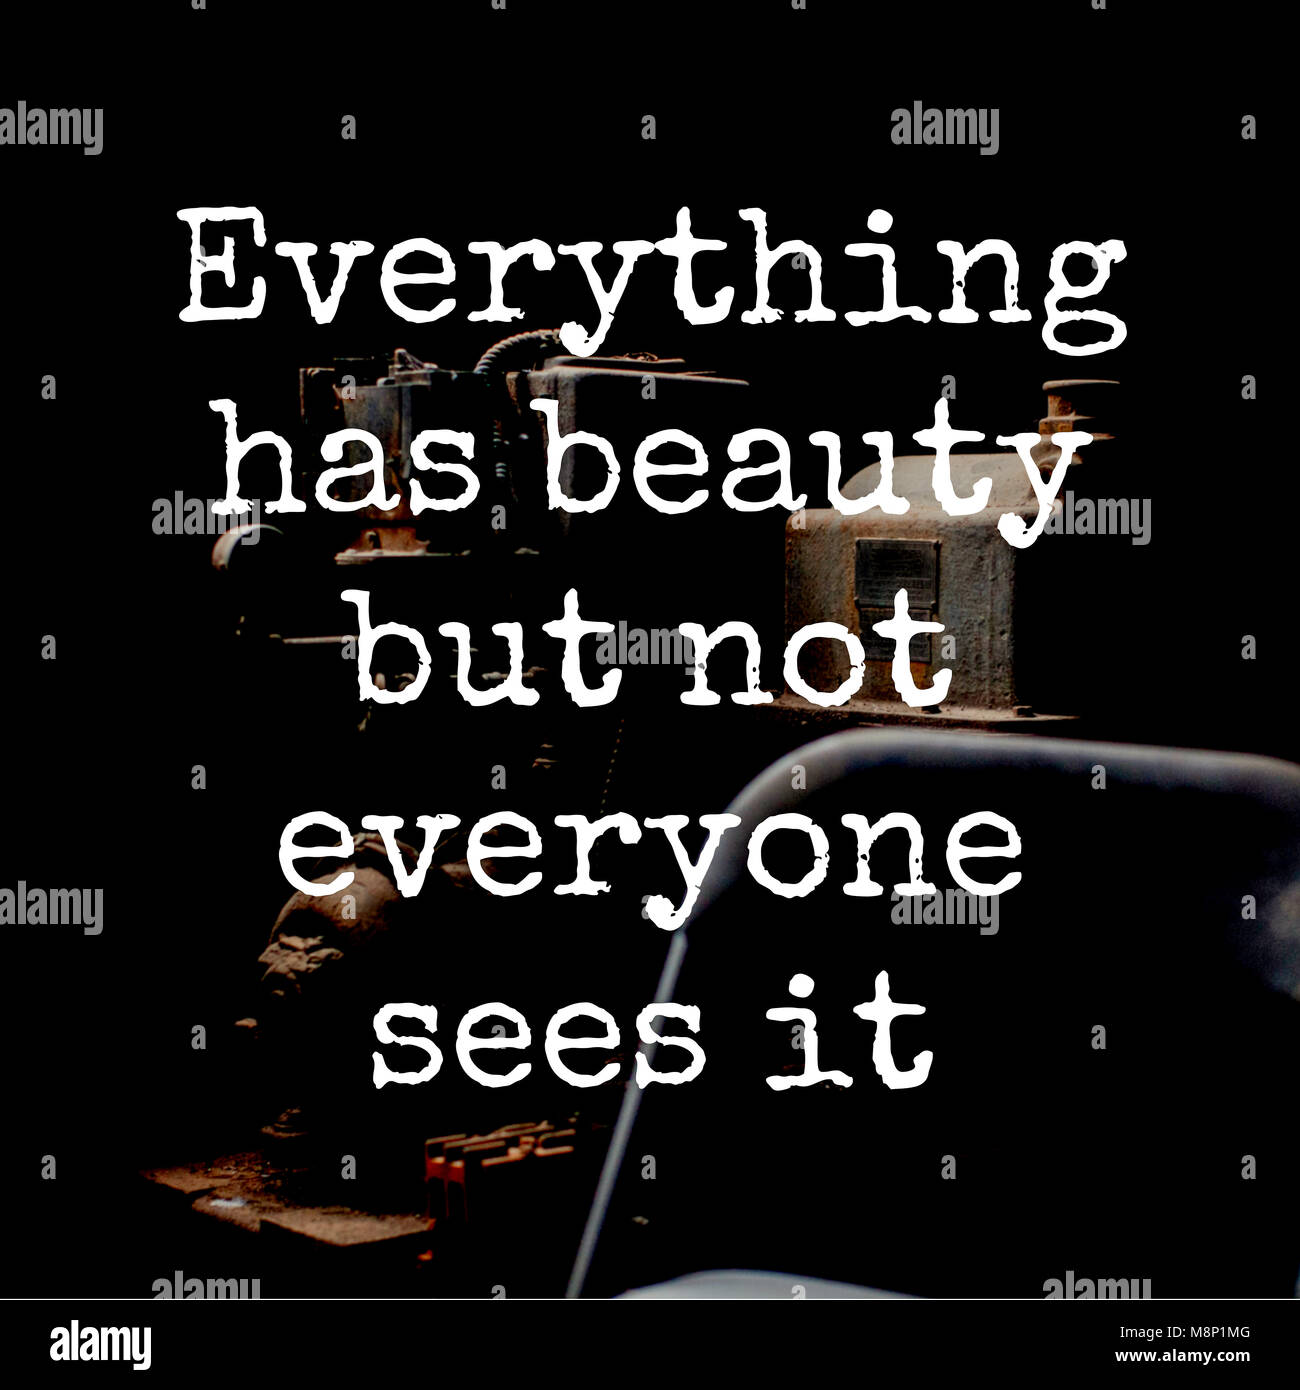 Everything Has Beauty But Not Everyone Sees It Social Media Quotes